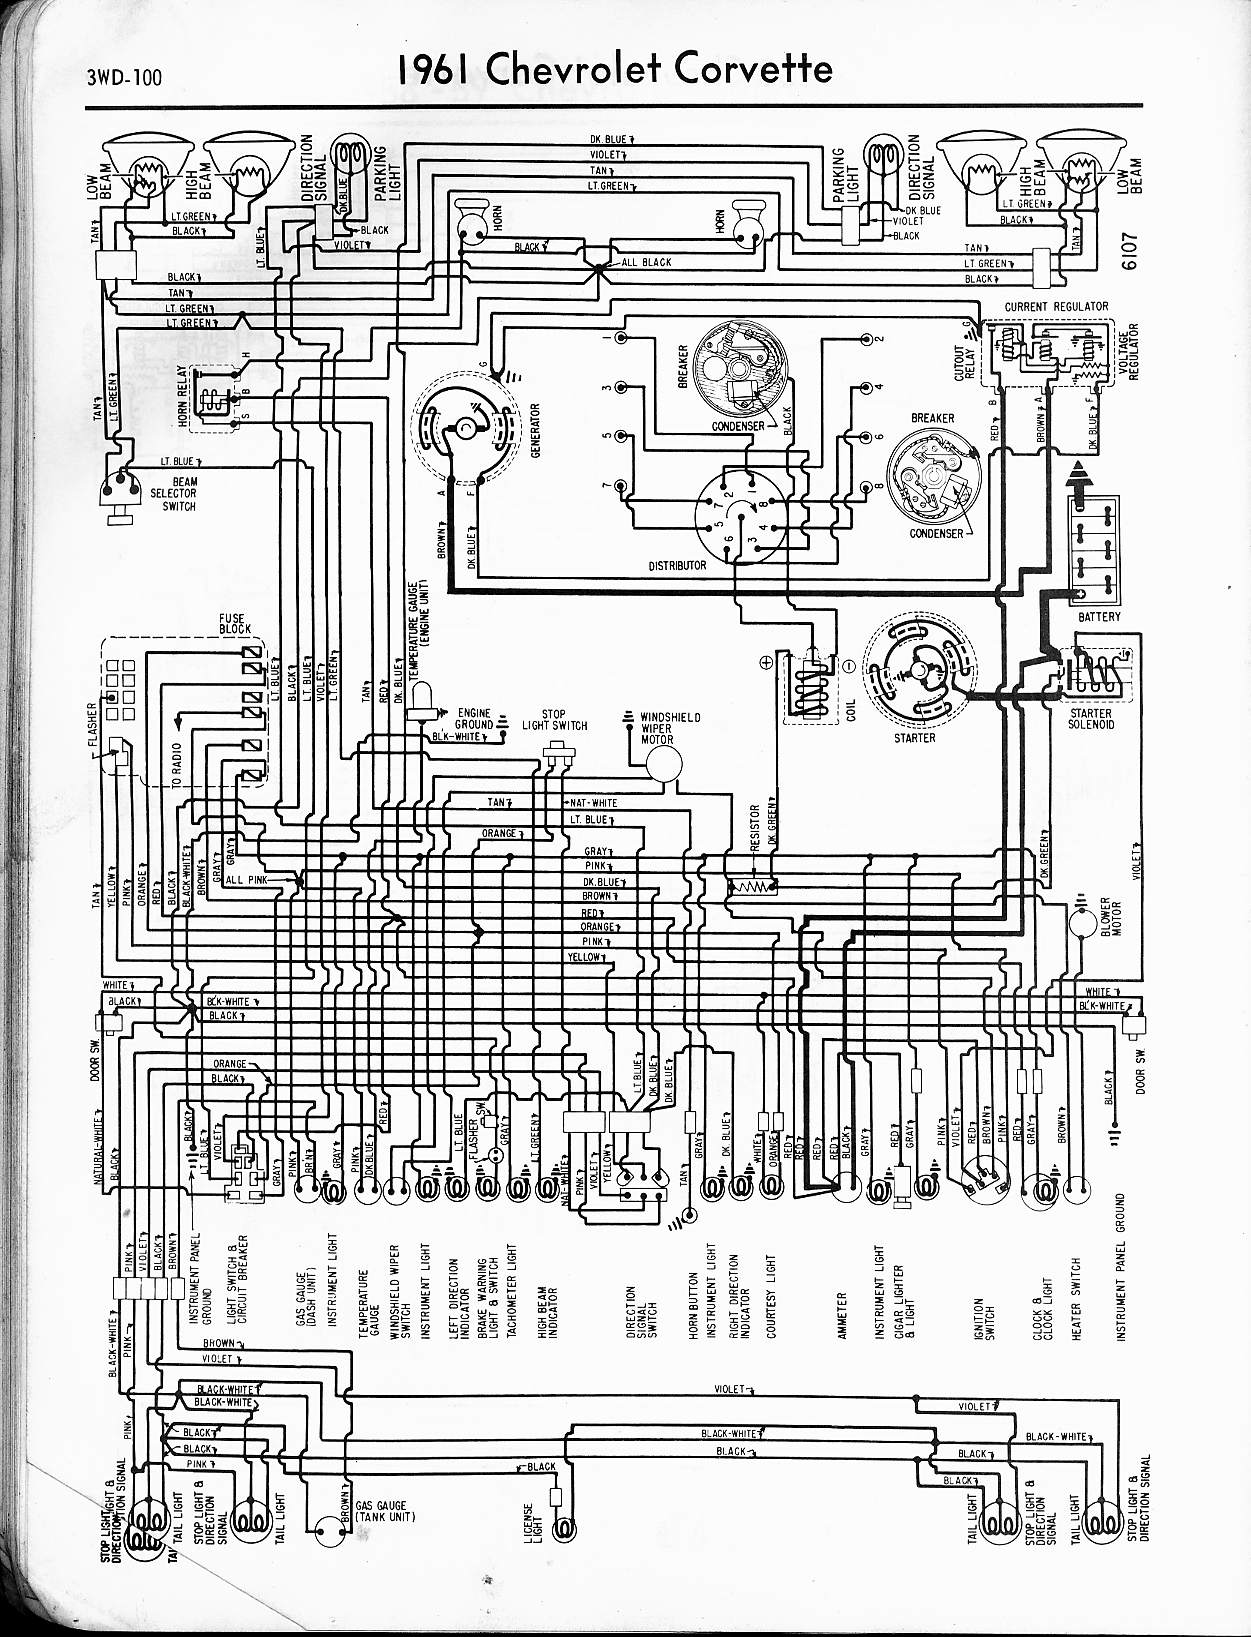 MWireChev61_3WD 100 57 65 chevy wiring diagrams 1960 corvette wiring diagram at aneh.co